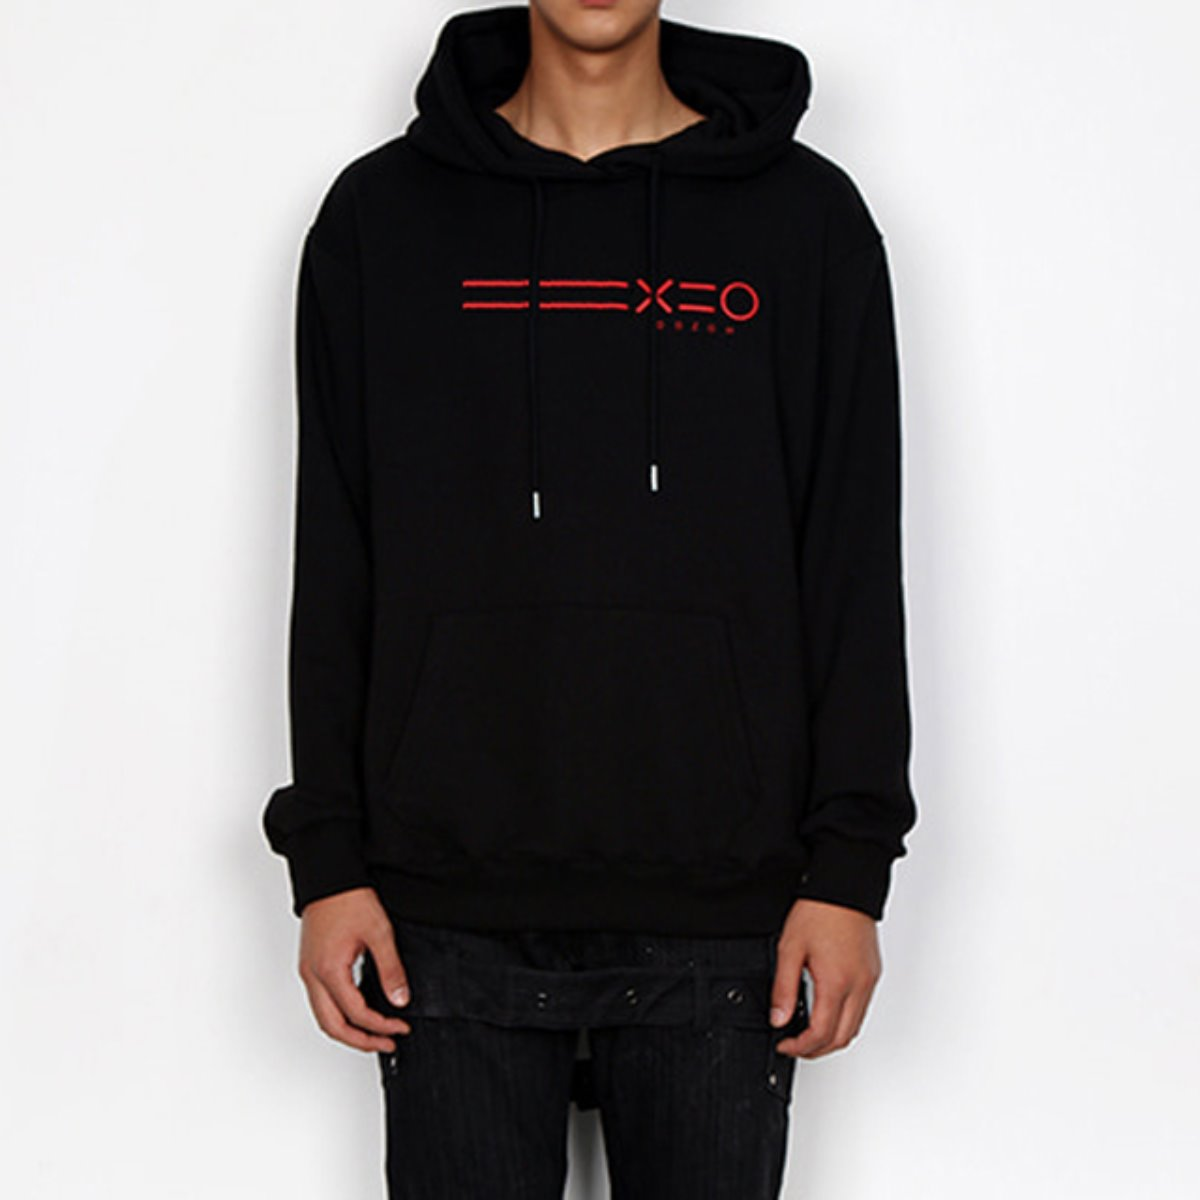 RED EQUAL LINE & LOGO HOODIE SWEATSHIRTS(BLACK)